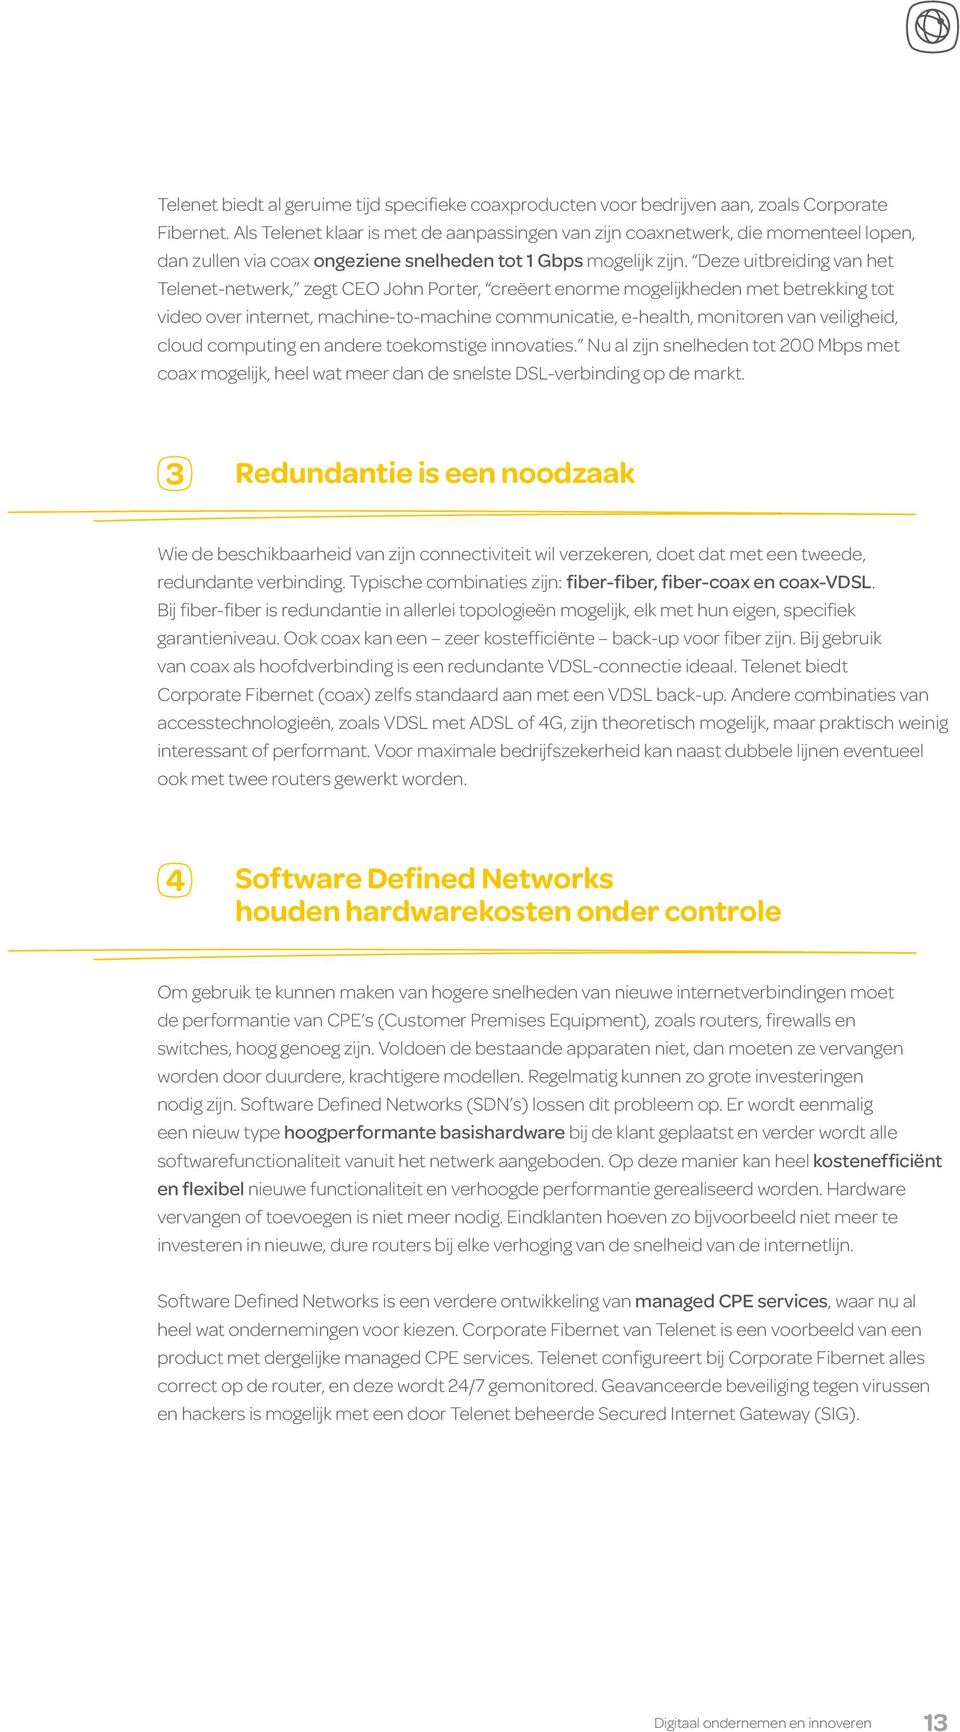 Deze uitbreiding van het Telenet-netwerk, zegt CEO John Porter, creëert enorme mogelijkheden met betrekking tot video over internet, machine-to-machine communicatie, e-health, monitoren van